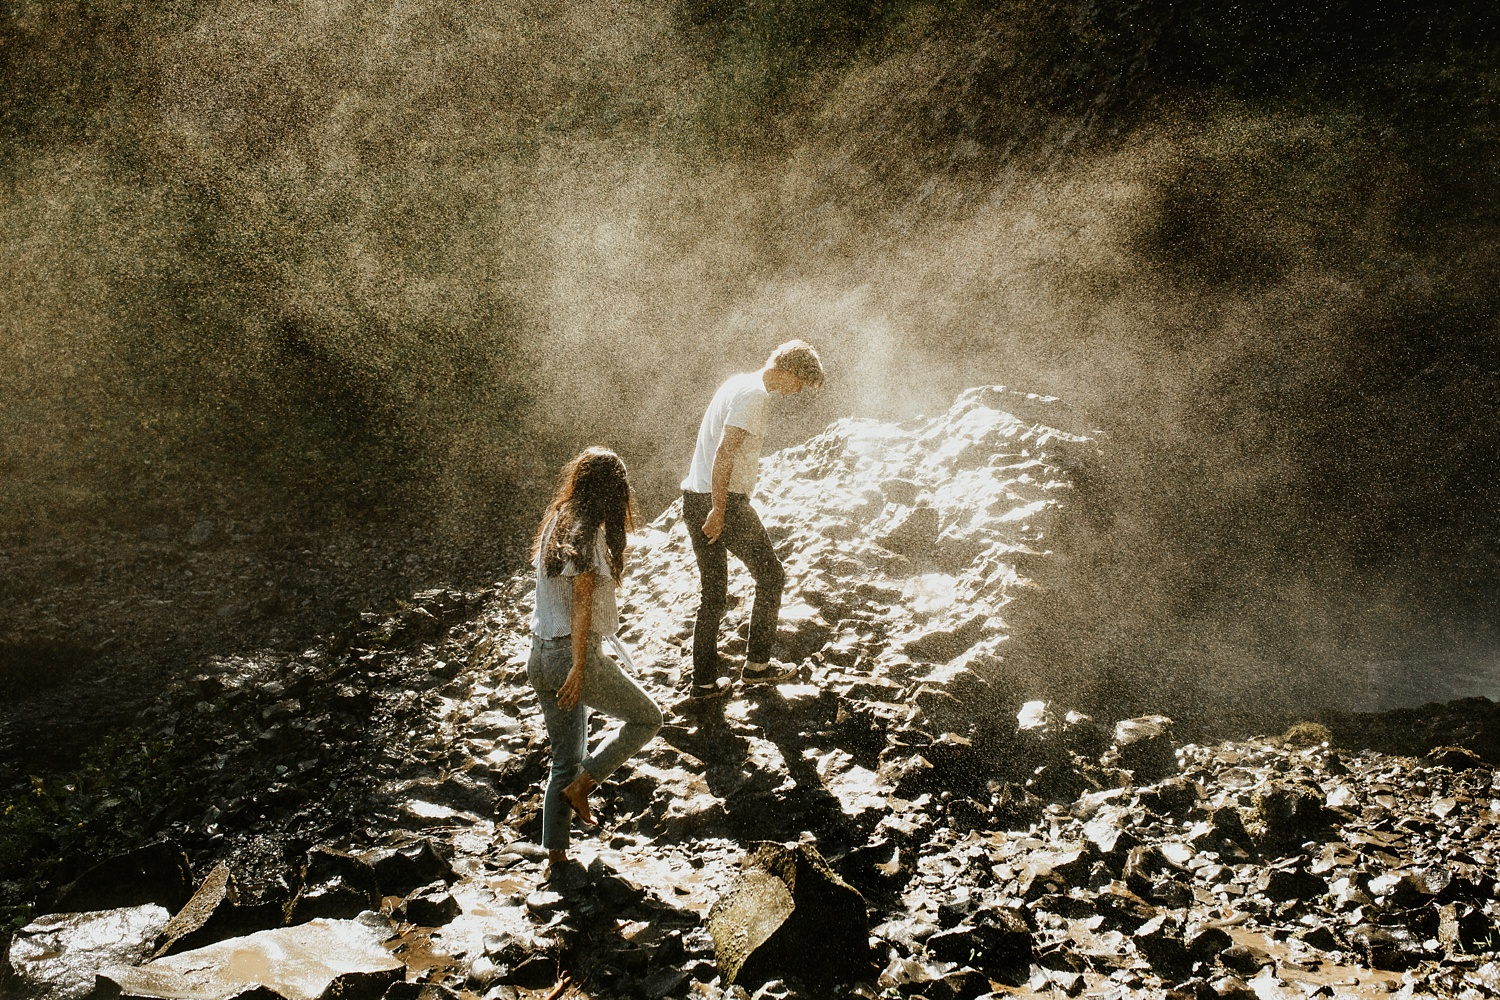 adventurous-mountain-engagement-session-banff-alberta-canada-calgary-edmonton-lethbridge-destination-wedding-photographer-havilah-heger-waterfall-banff-session-couples-photography_12